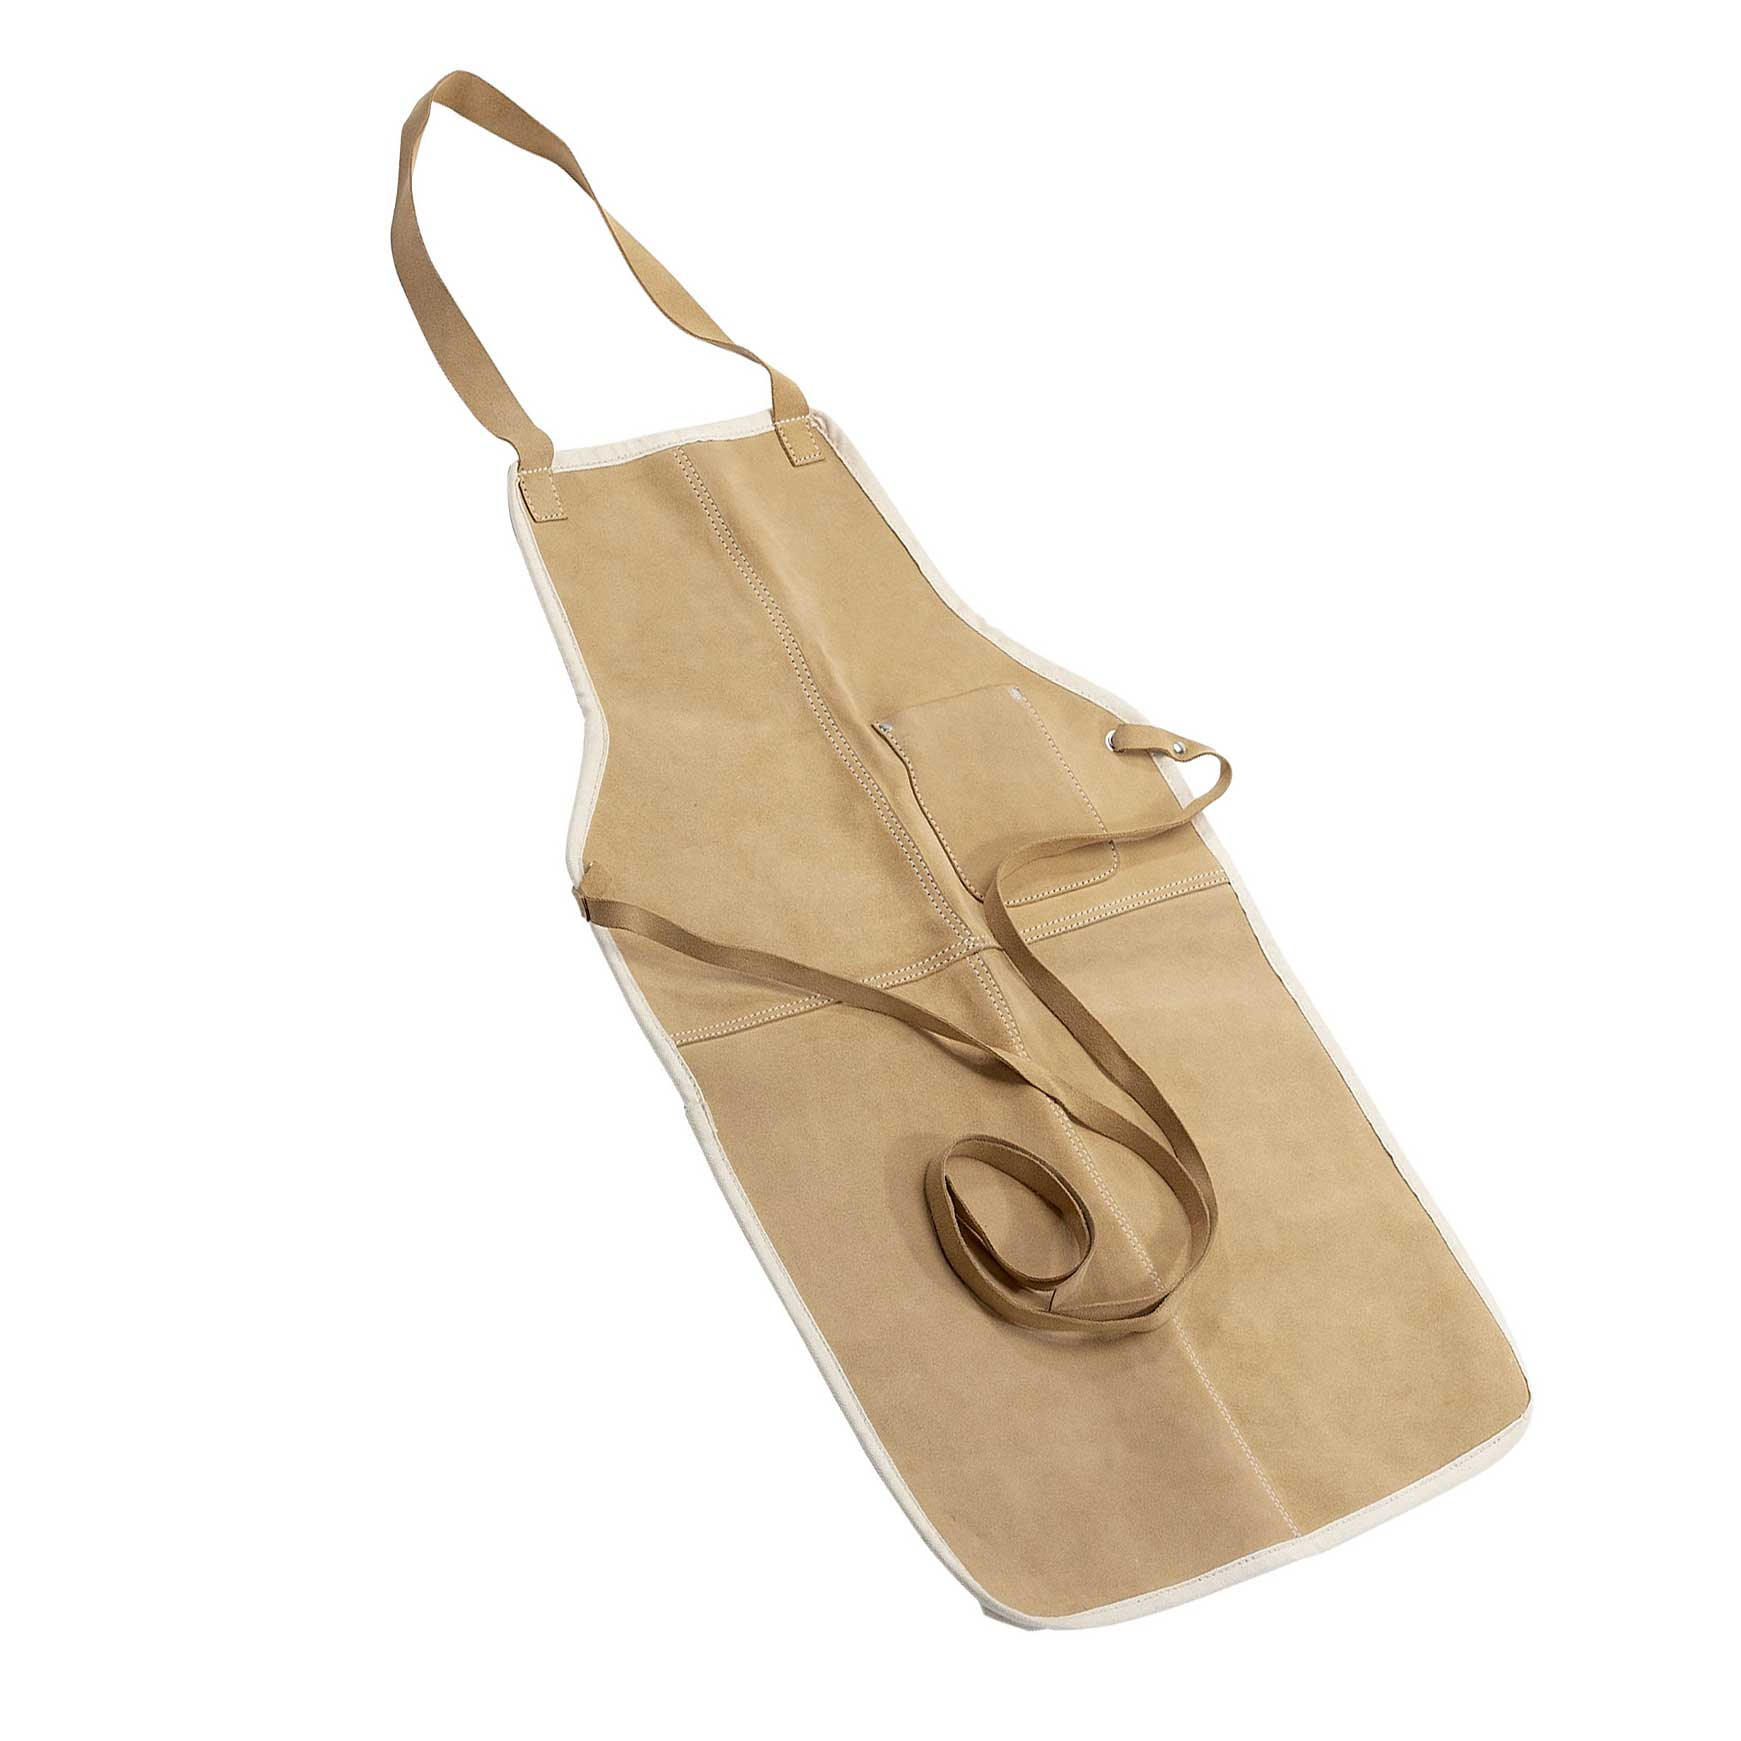 Beautiful The Man Apron  The Ultimate BBQ Apron  ApronShopcouk